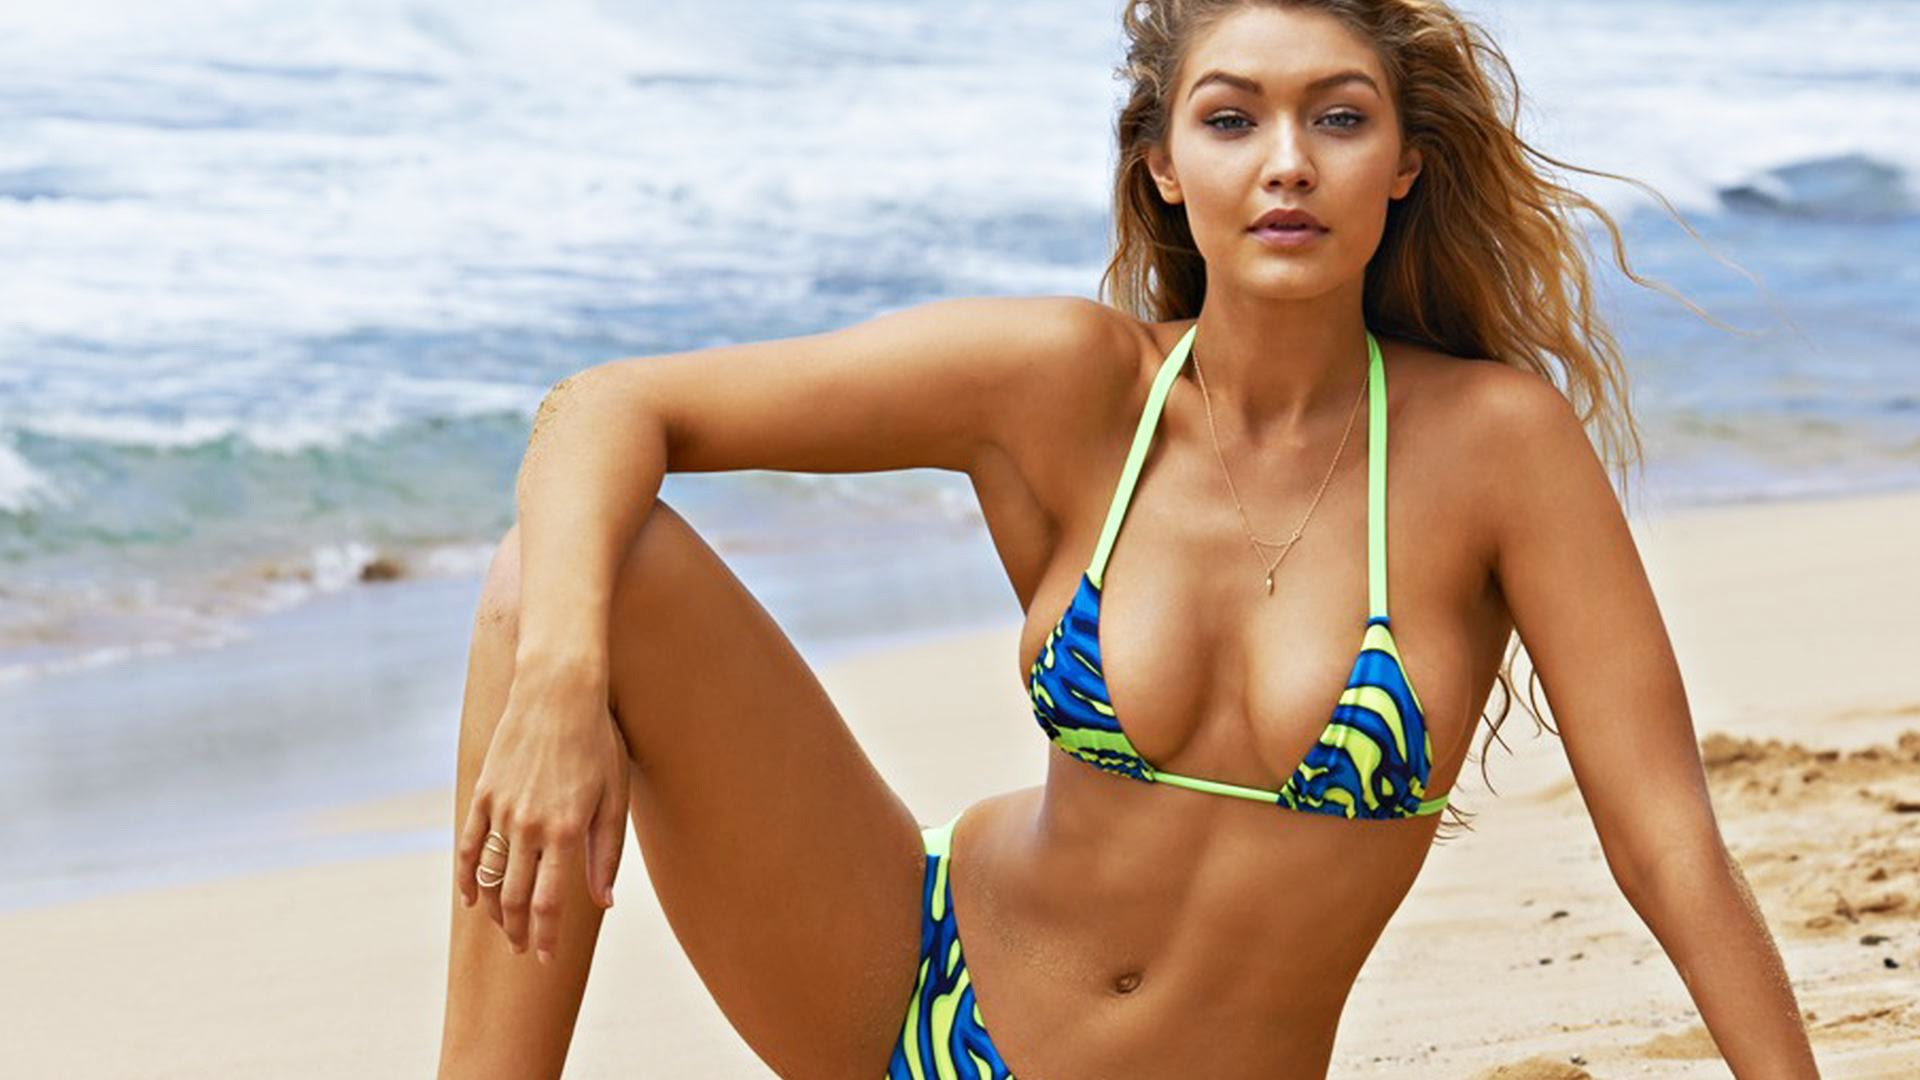 the top 50 hottest ever bikini babes revealed - the clothes maiden